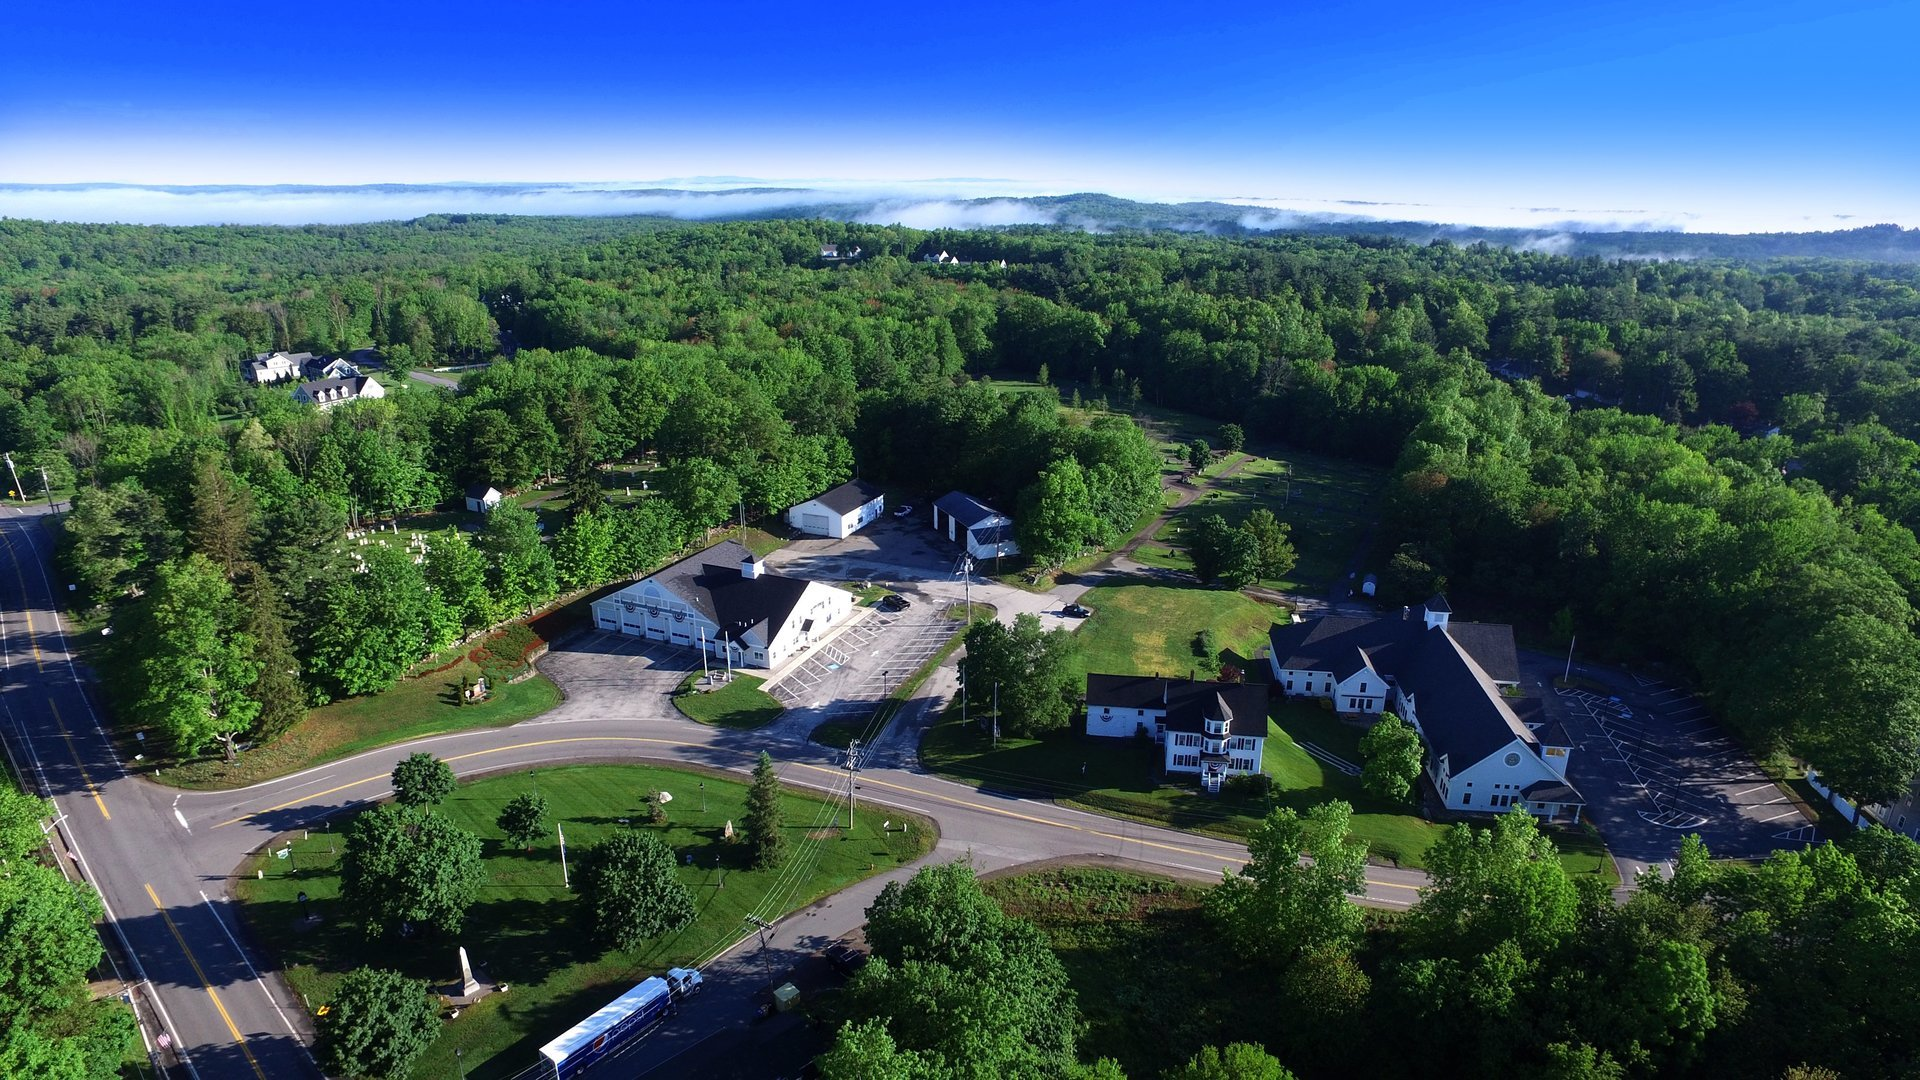 Aerial Image of Atkinson NH Dow Commons